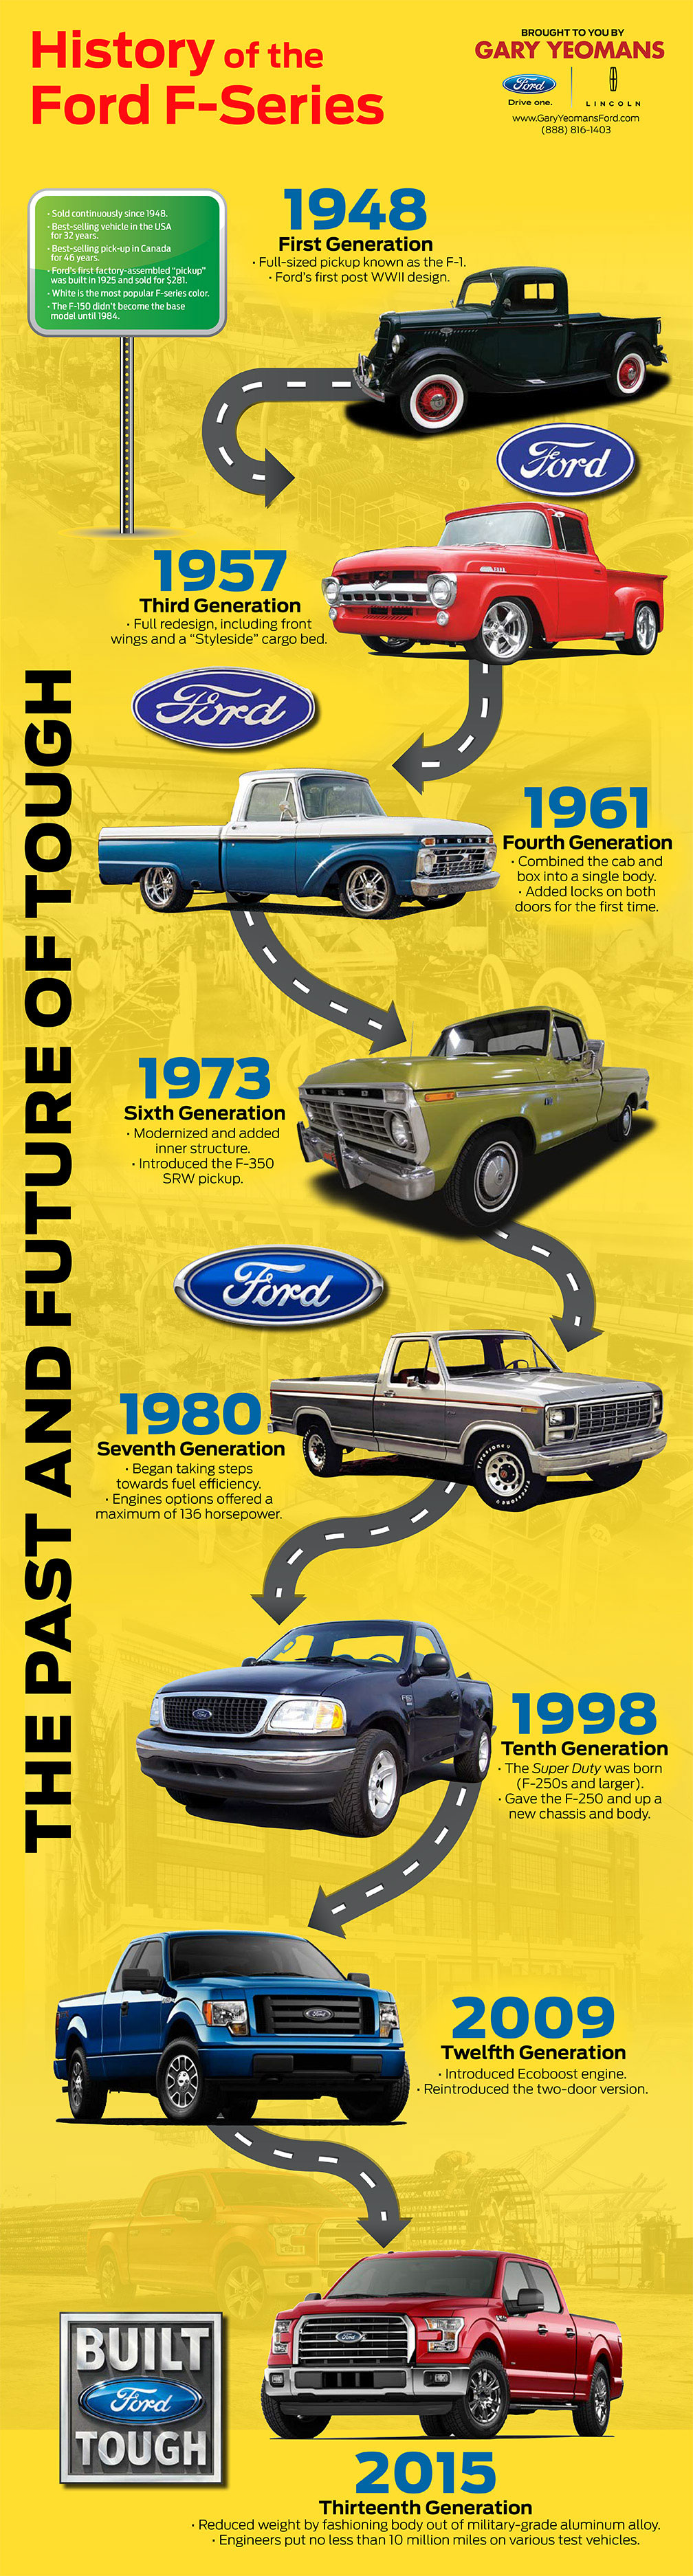 History Of The Ford F Series Infographic Ford F Series Ford